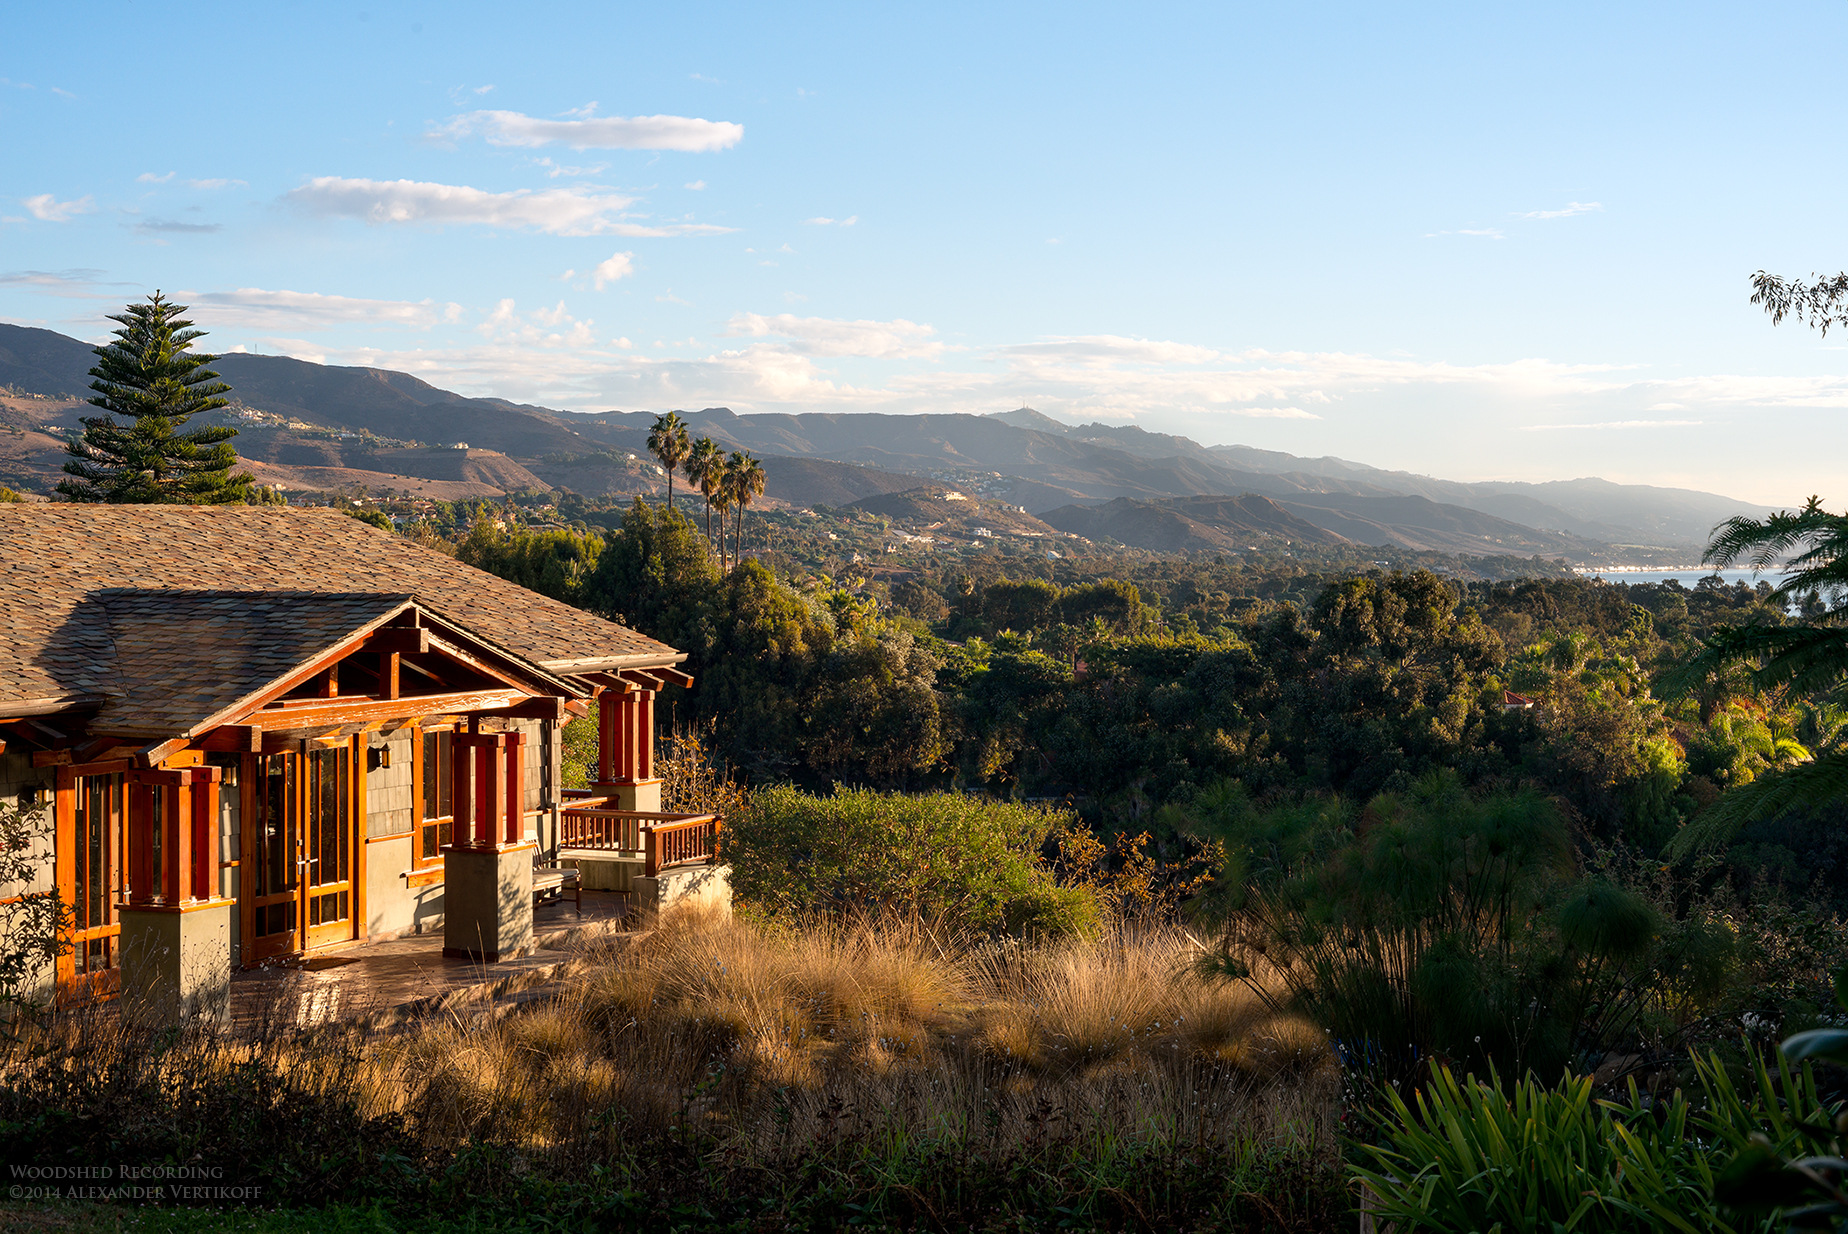 woodshed recording studio malibu ca with ocean view and surrounding meadow